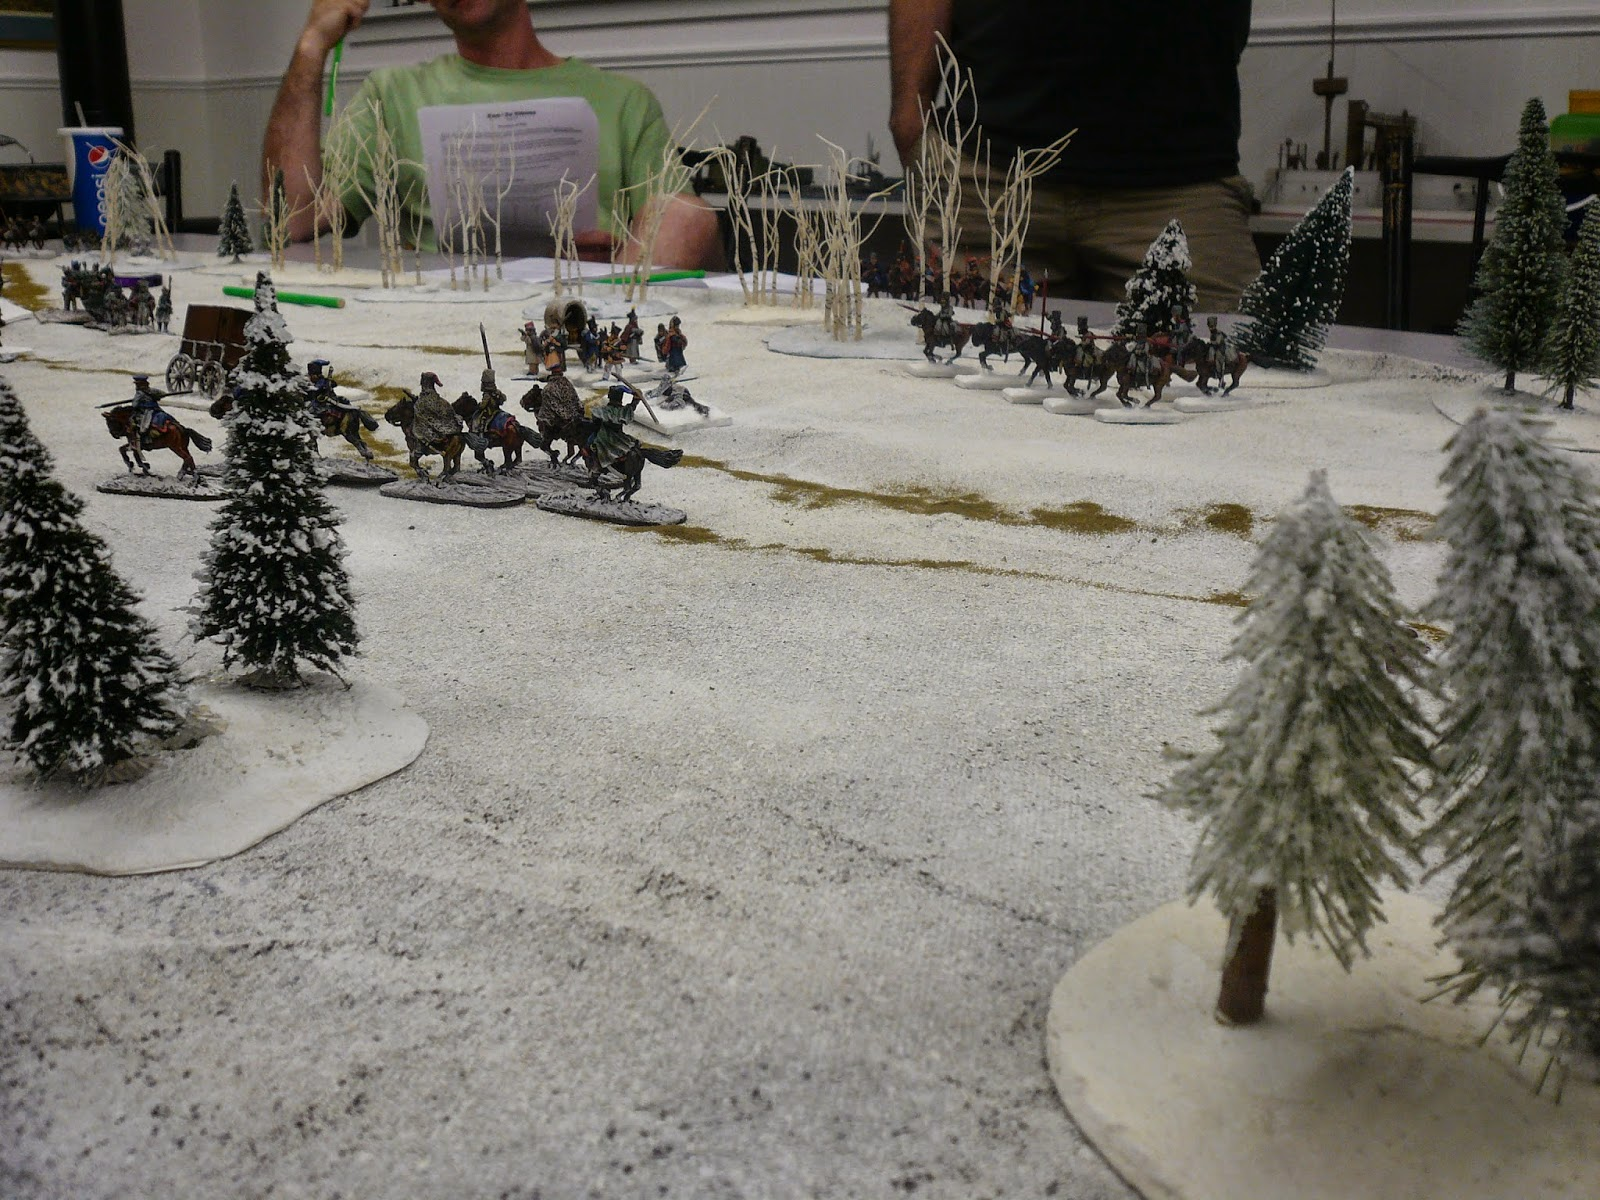 More Cossacks emerge from the woods!